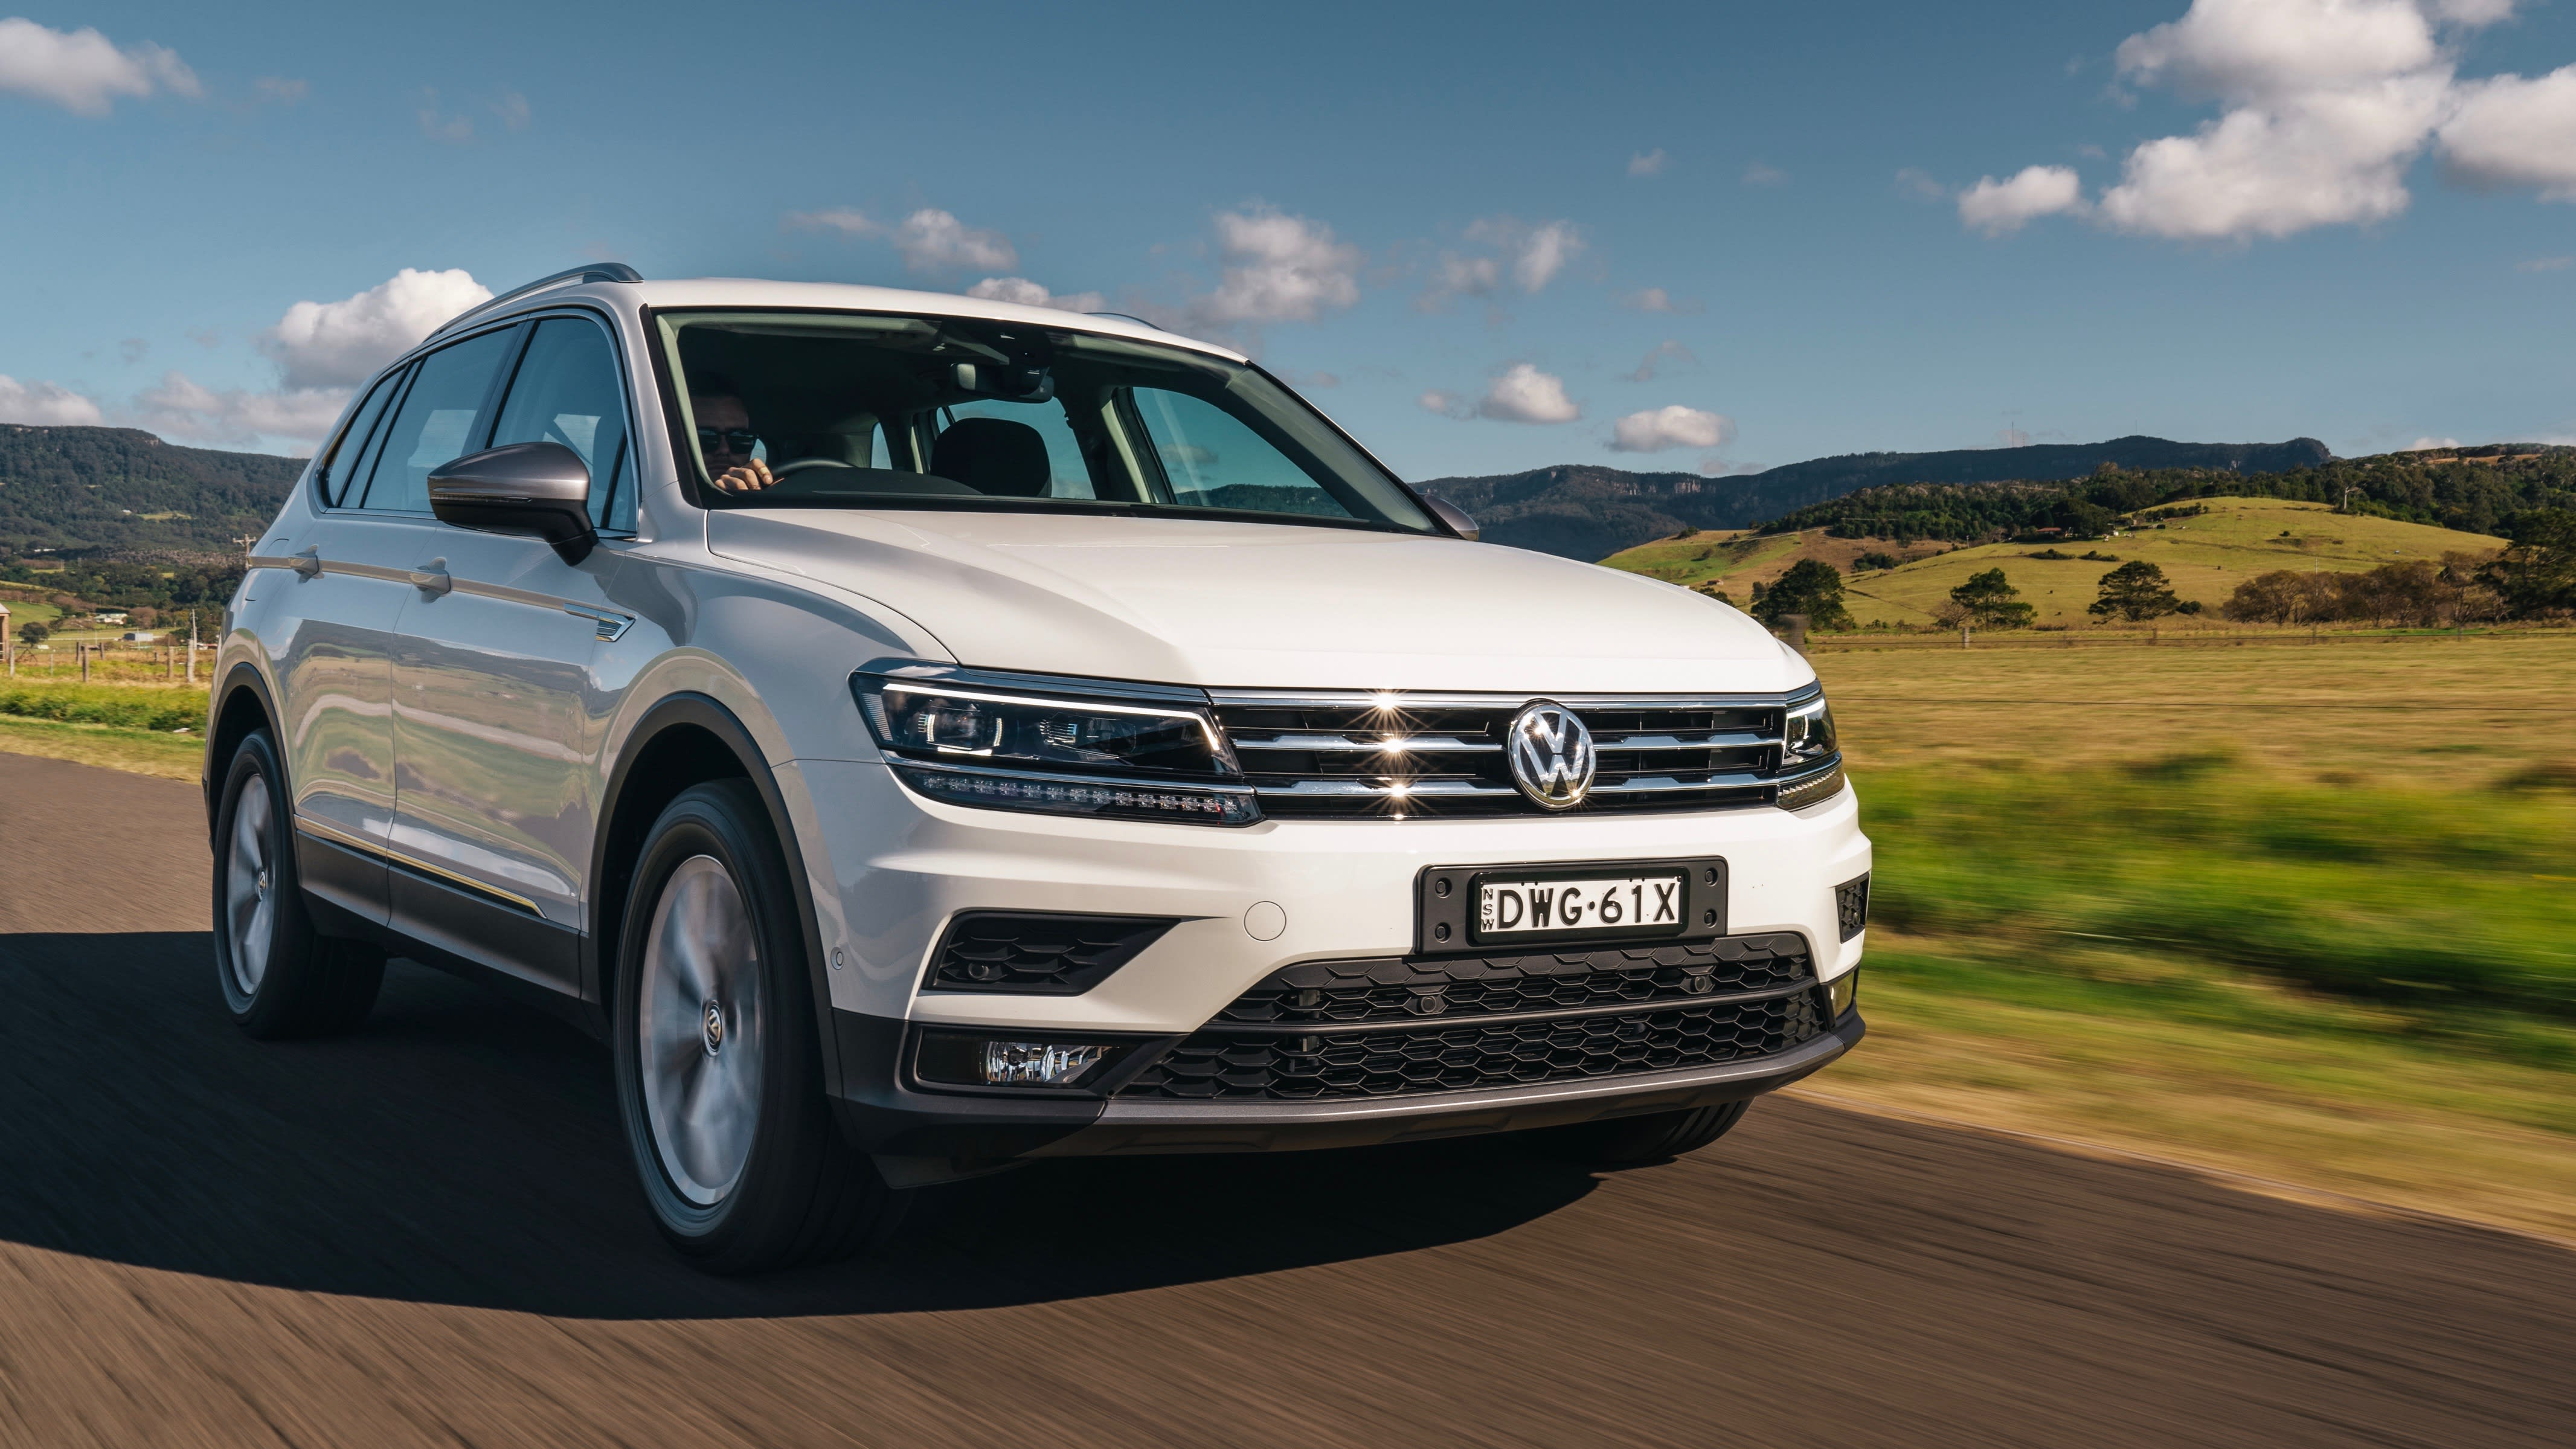 How To Return A Used Car To The Dealer >> Volkswagen Tiguan price-leader to return later in 2019 - Car News | CarsGuide